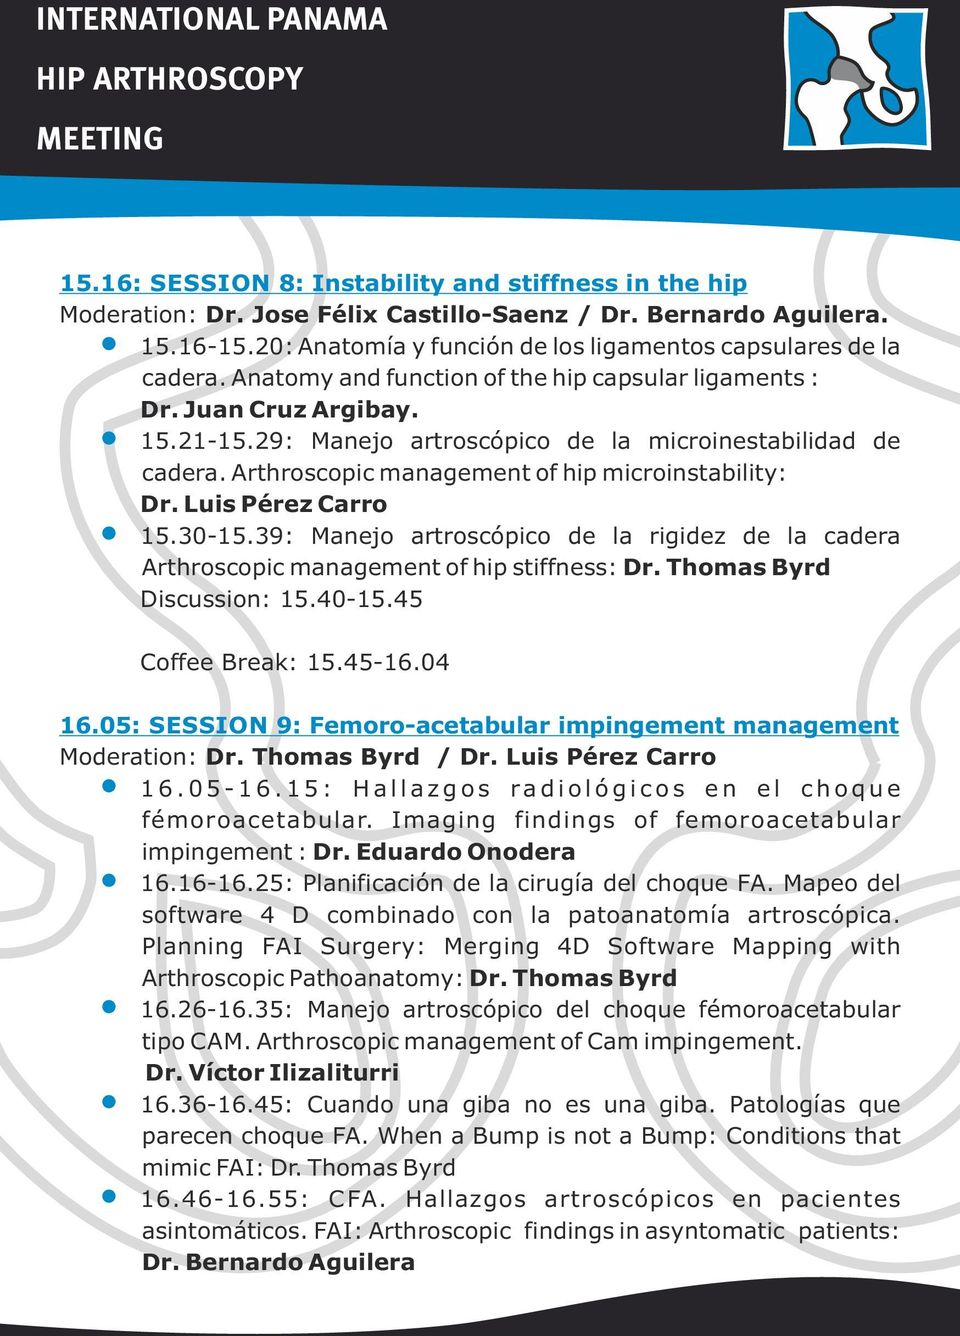 Luis Pérez Carro 15.30-15.39: Manejo artroscópico de la rigidez de la cadera Arthroscopic management of hip stiffness: Dr. Thomas Byrd Discussion: 15.40-15.45 Coffee Break: 15.45-16.04 16.